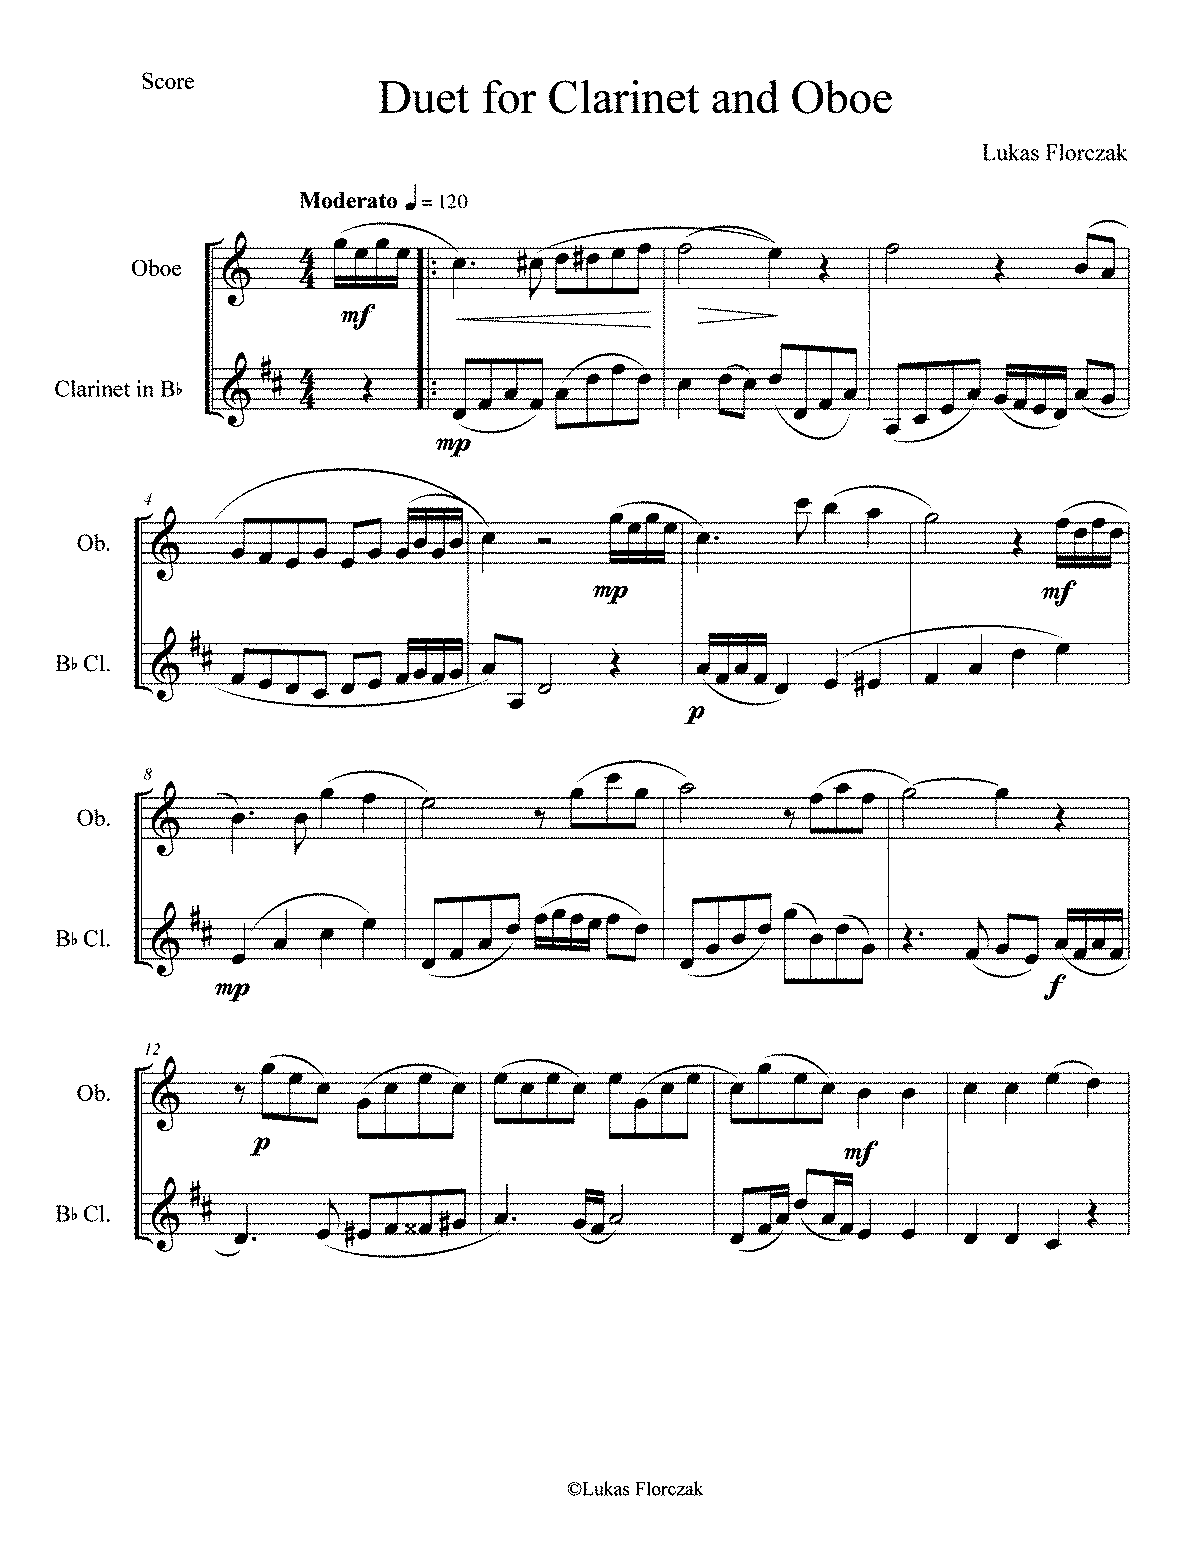 PMLP429847-Duet for Clarinet and Oboe.pdf